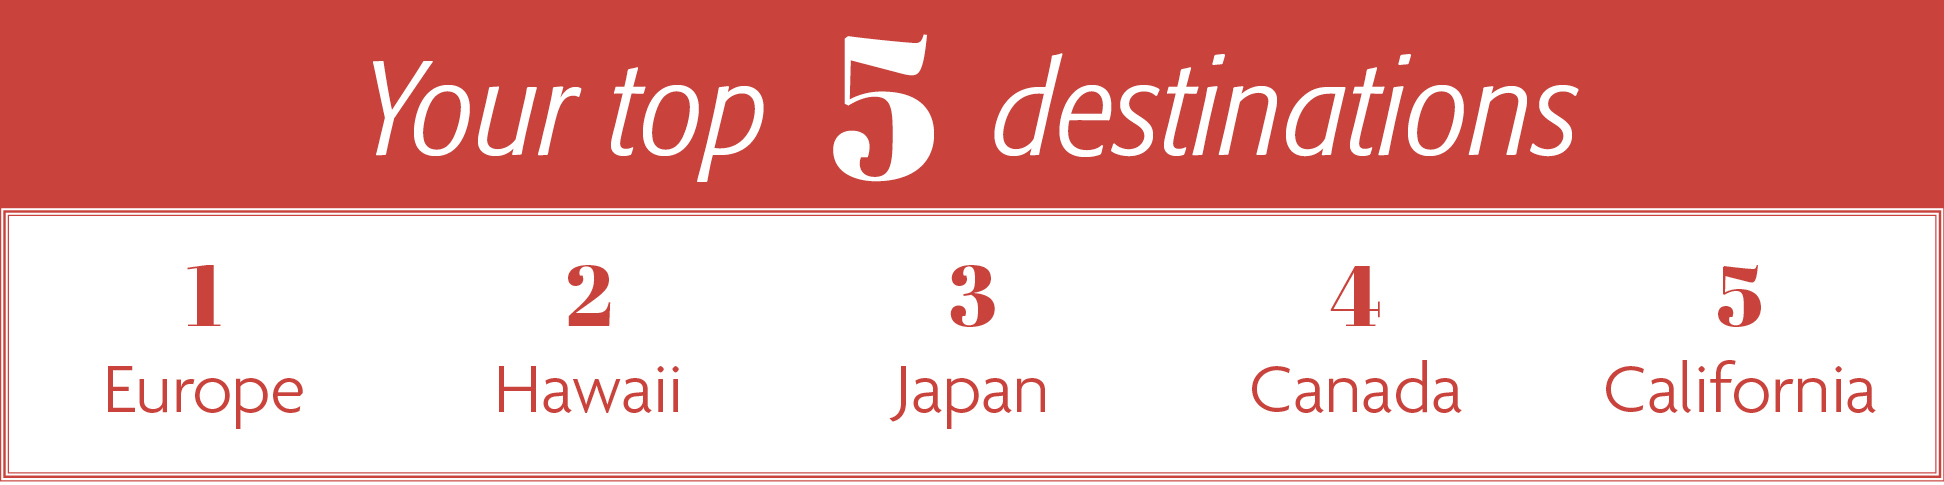 Your top 5 destinations - 1. Europe 2. Hawaii 3. Japan 4. Canada 5. California